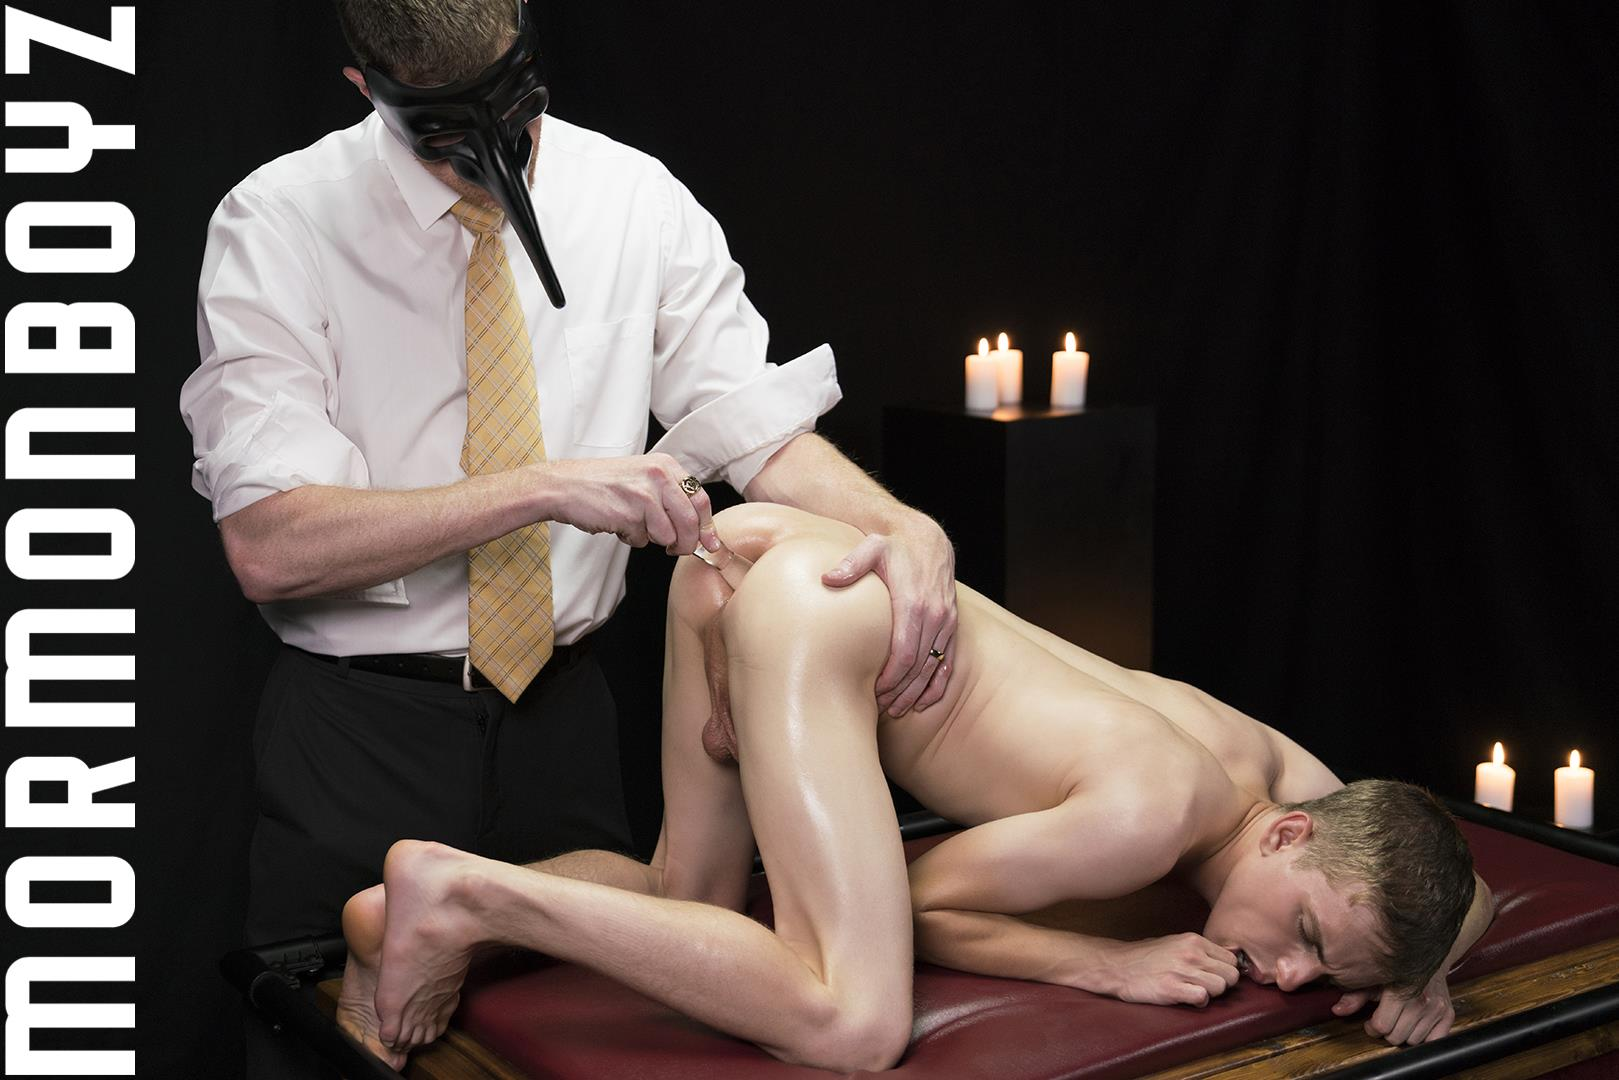 Mormon-Boyz-Older-Big-Dick-Daddy-Barebacking-Younger-Twink-Gay-Sex-Video-15 Mormon Missionary Twink Takes A Thick Daddy Cock Up The Ass Raw